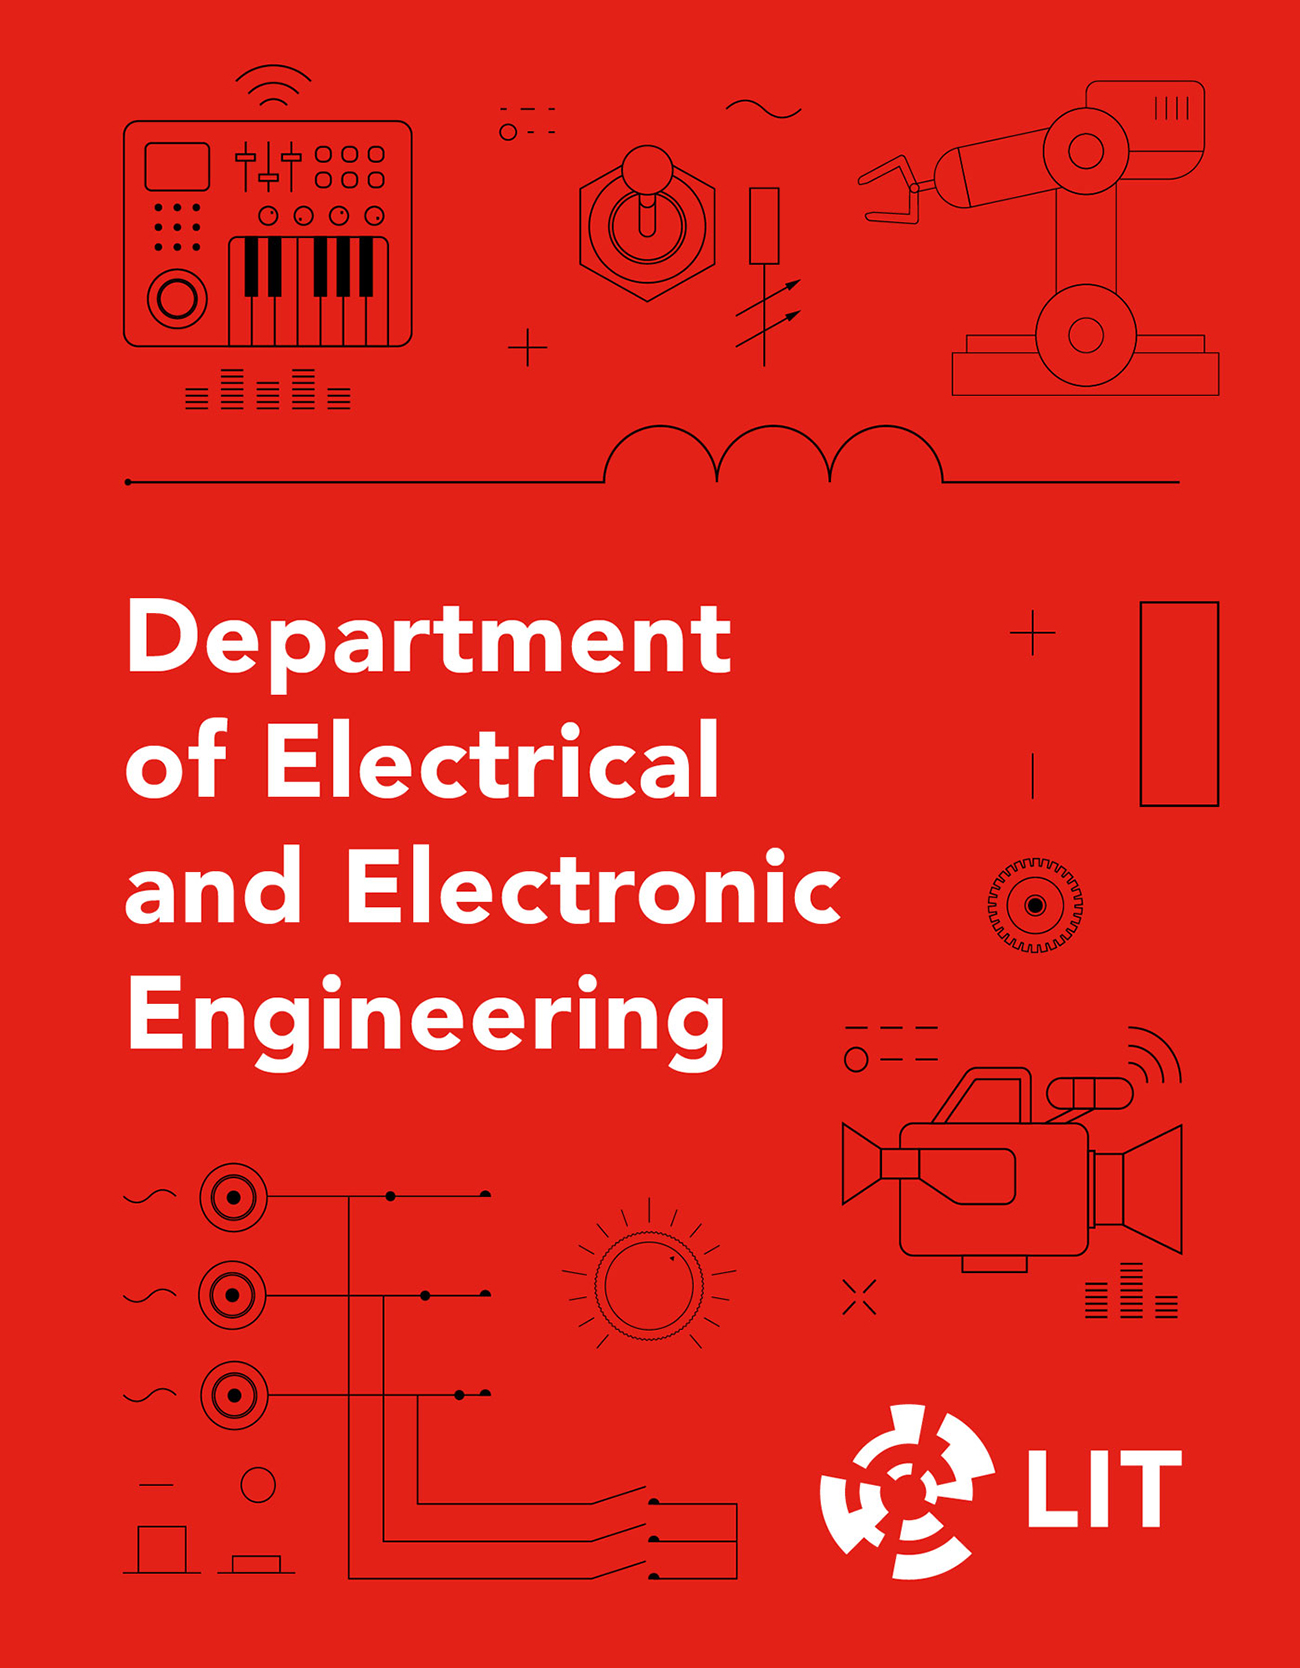 LIT Electrical and Electronic Engineering Iconography